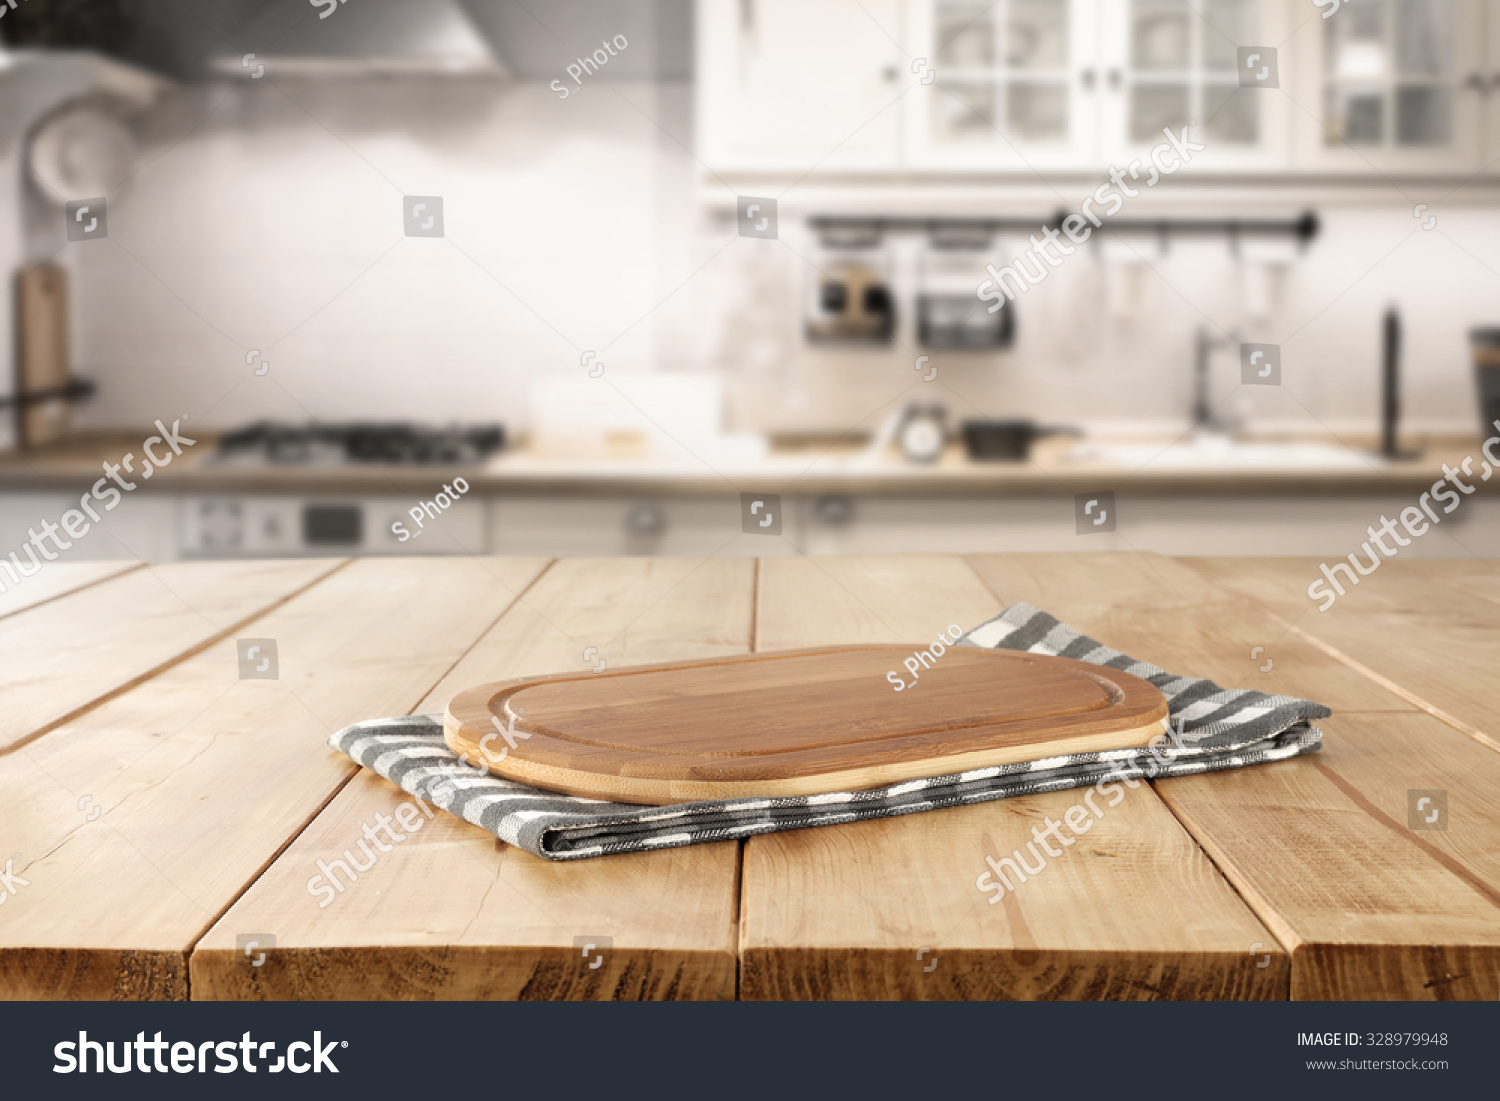 blurred background of retro kitchen with kitchen desk napkin and space for you 328979948 - Kitchen Desk